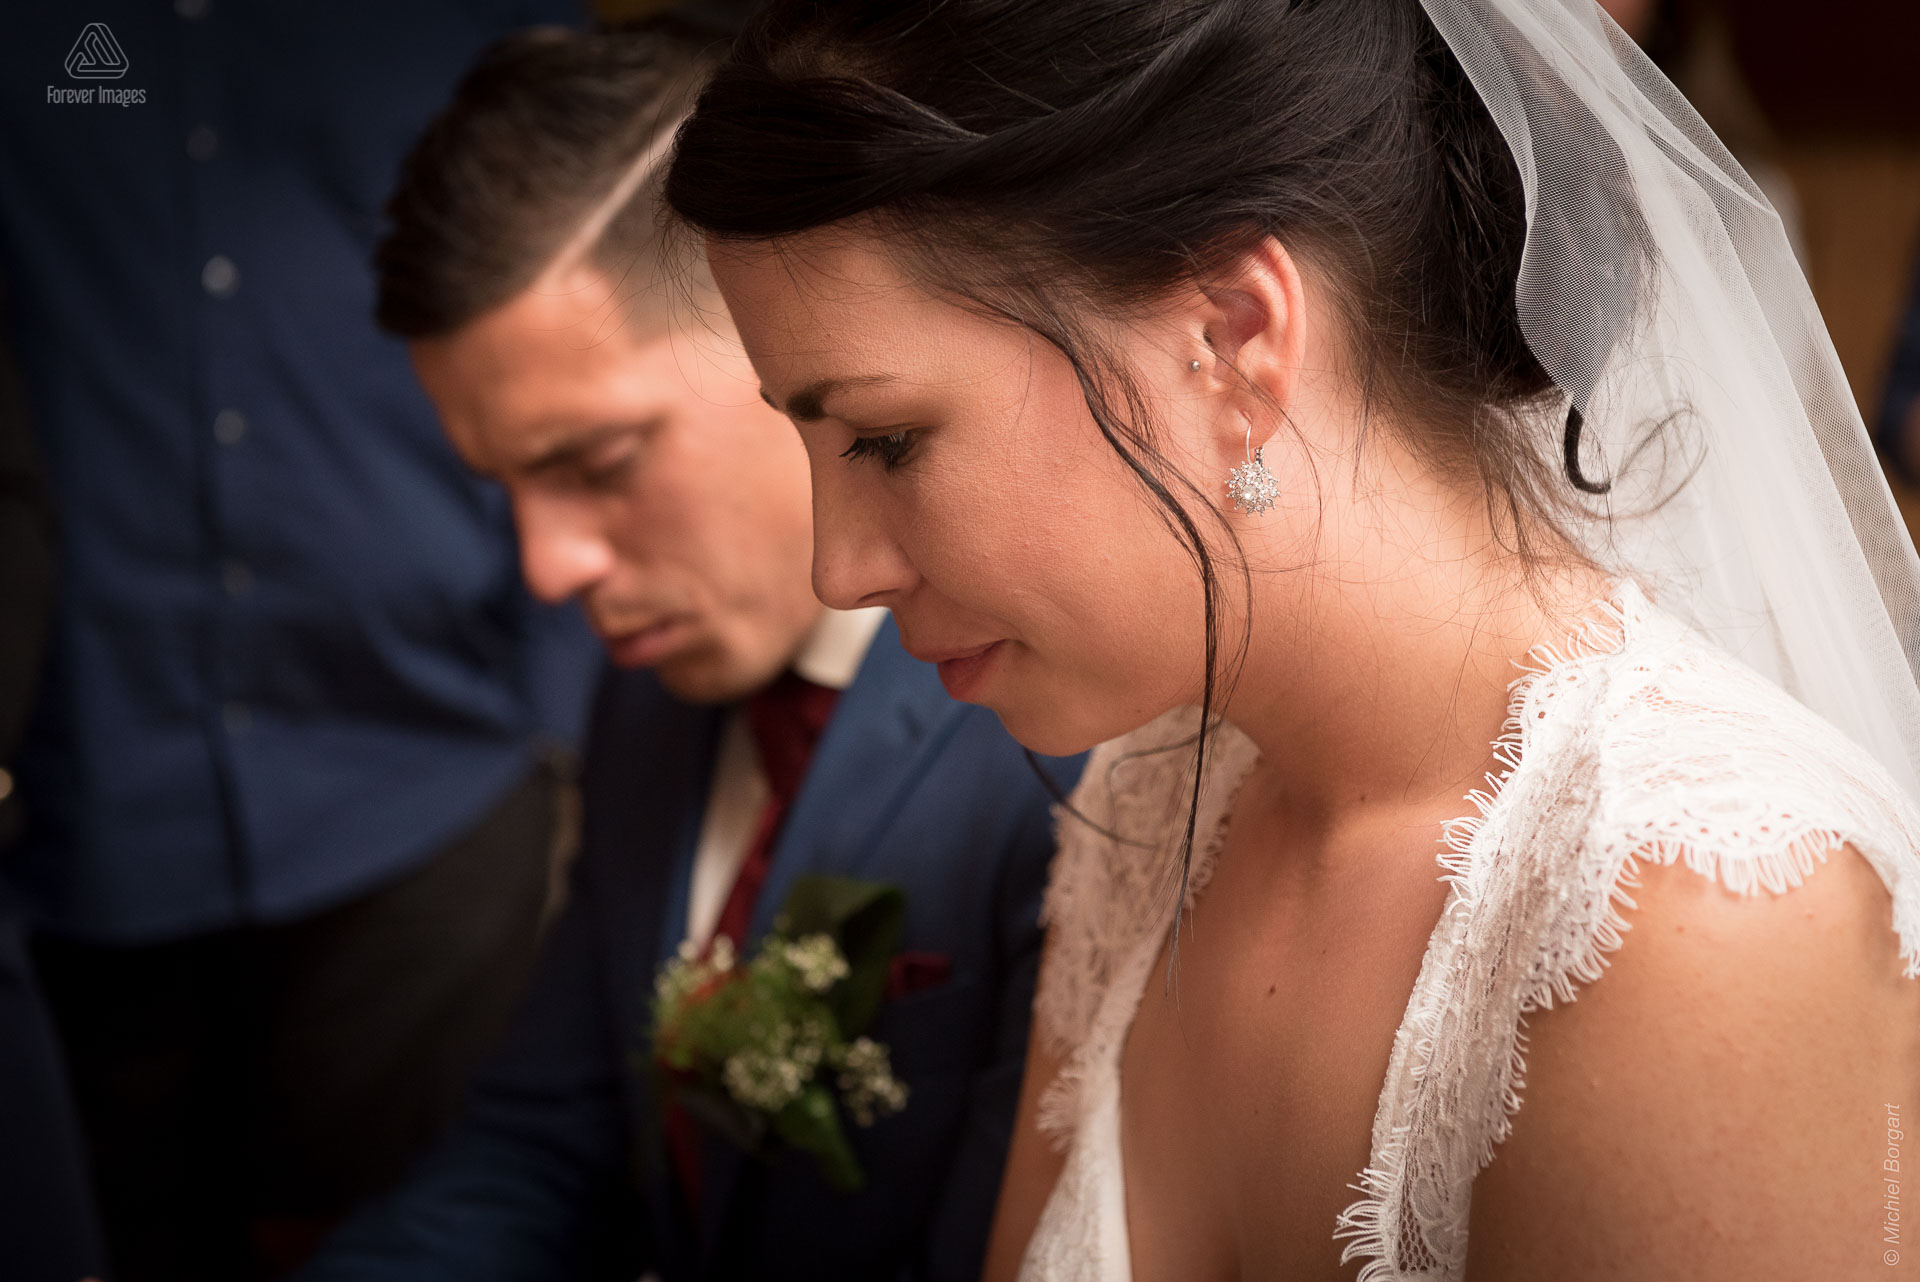 Bridal photo in which the bridal couple is blessed | Kevin Leonie | Wedding Photographer Michiel Borgart - Forever Images.